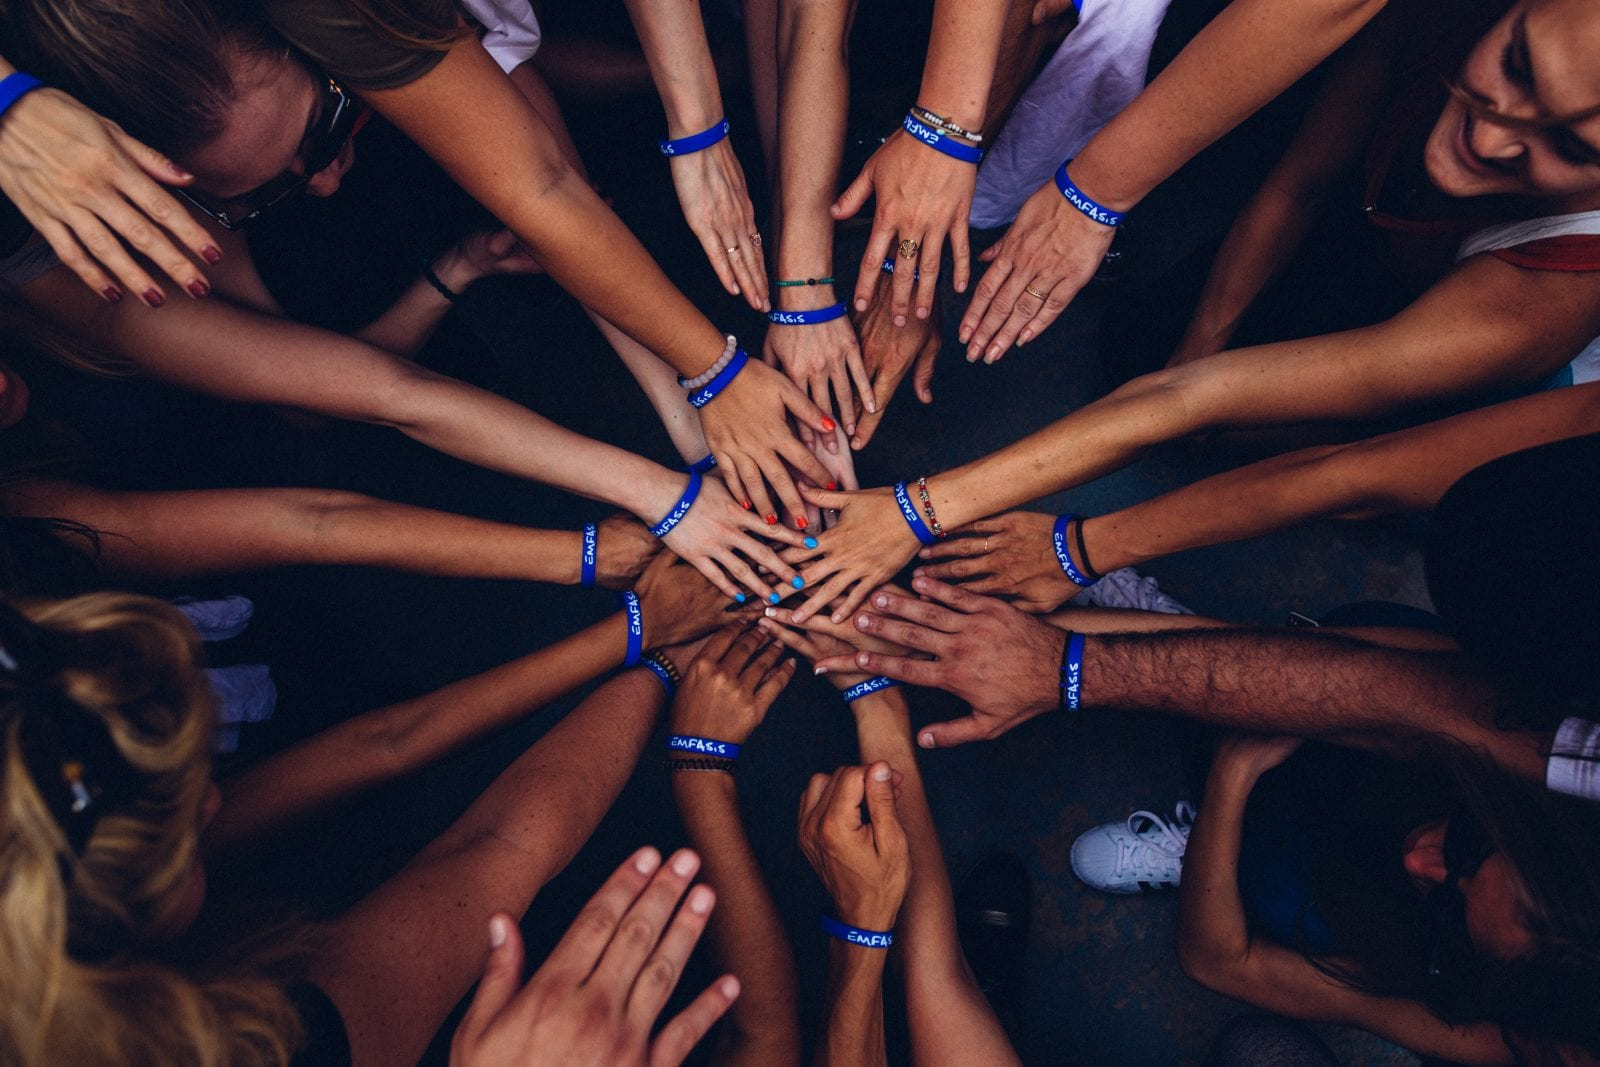 group of people putting hands into a huddle